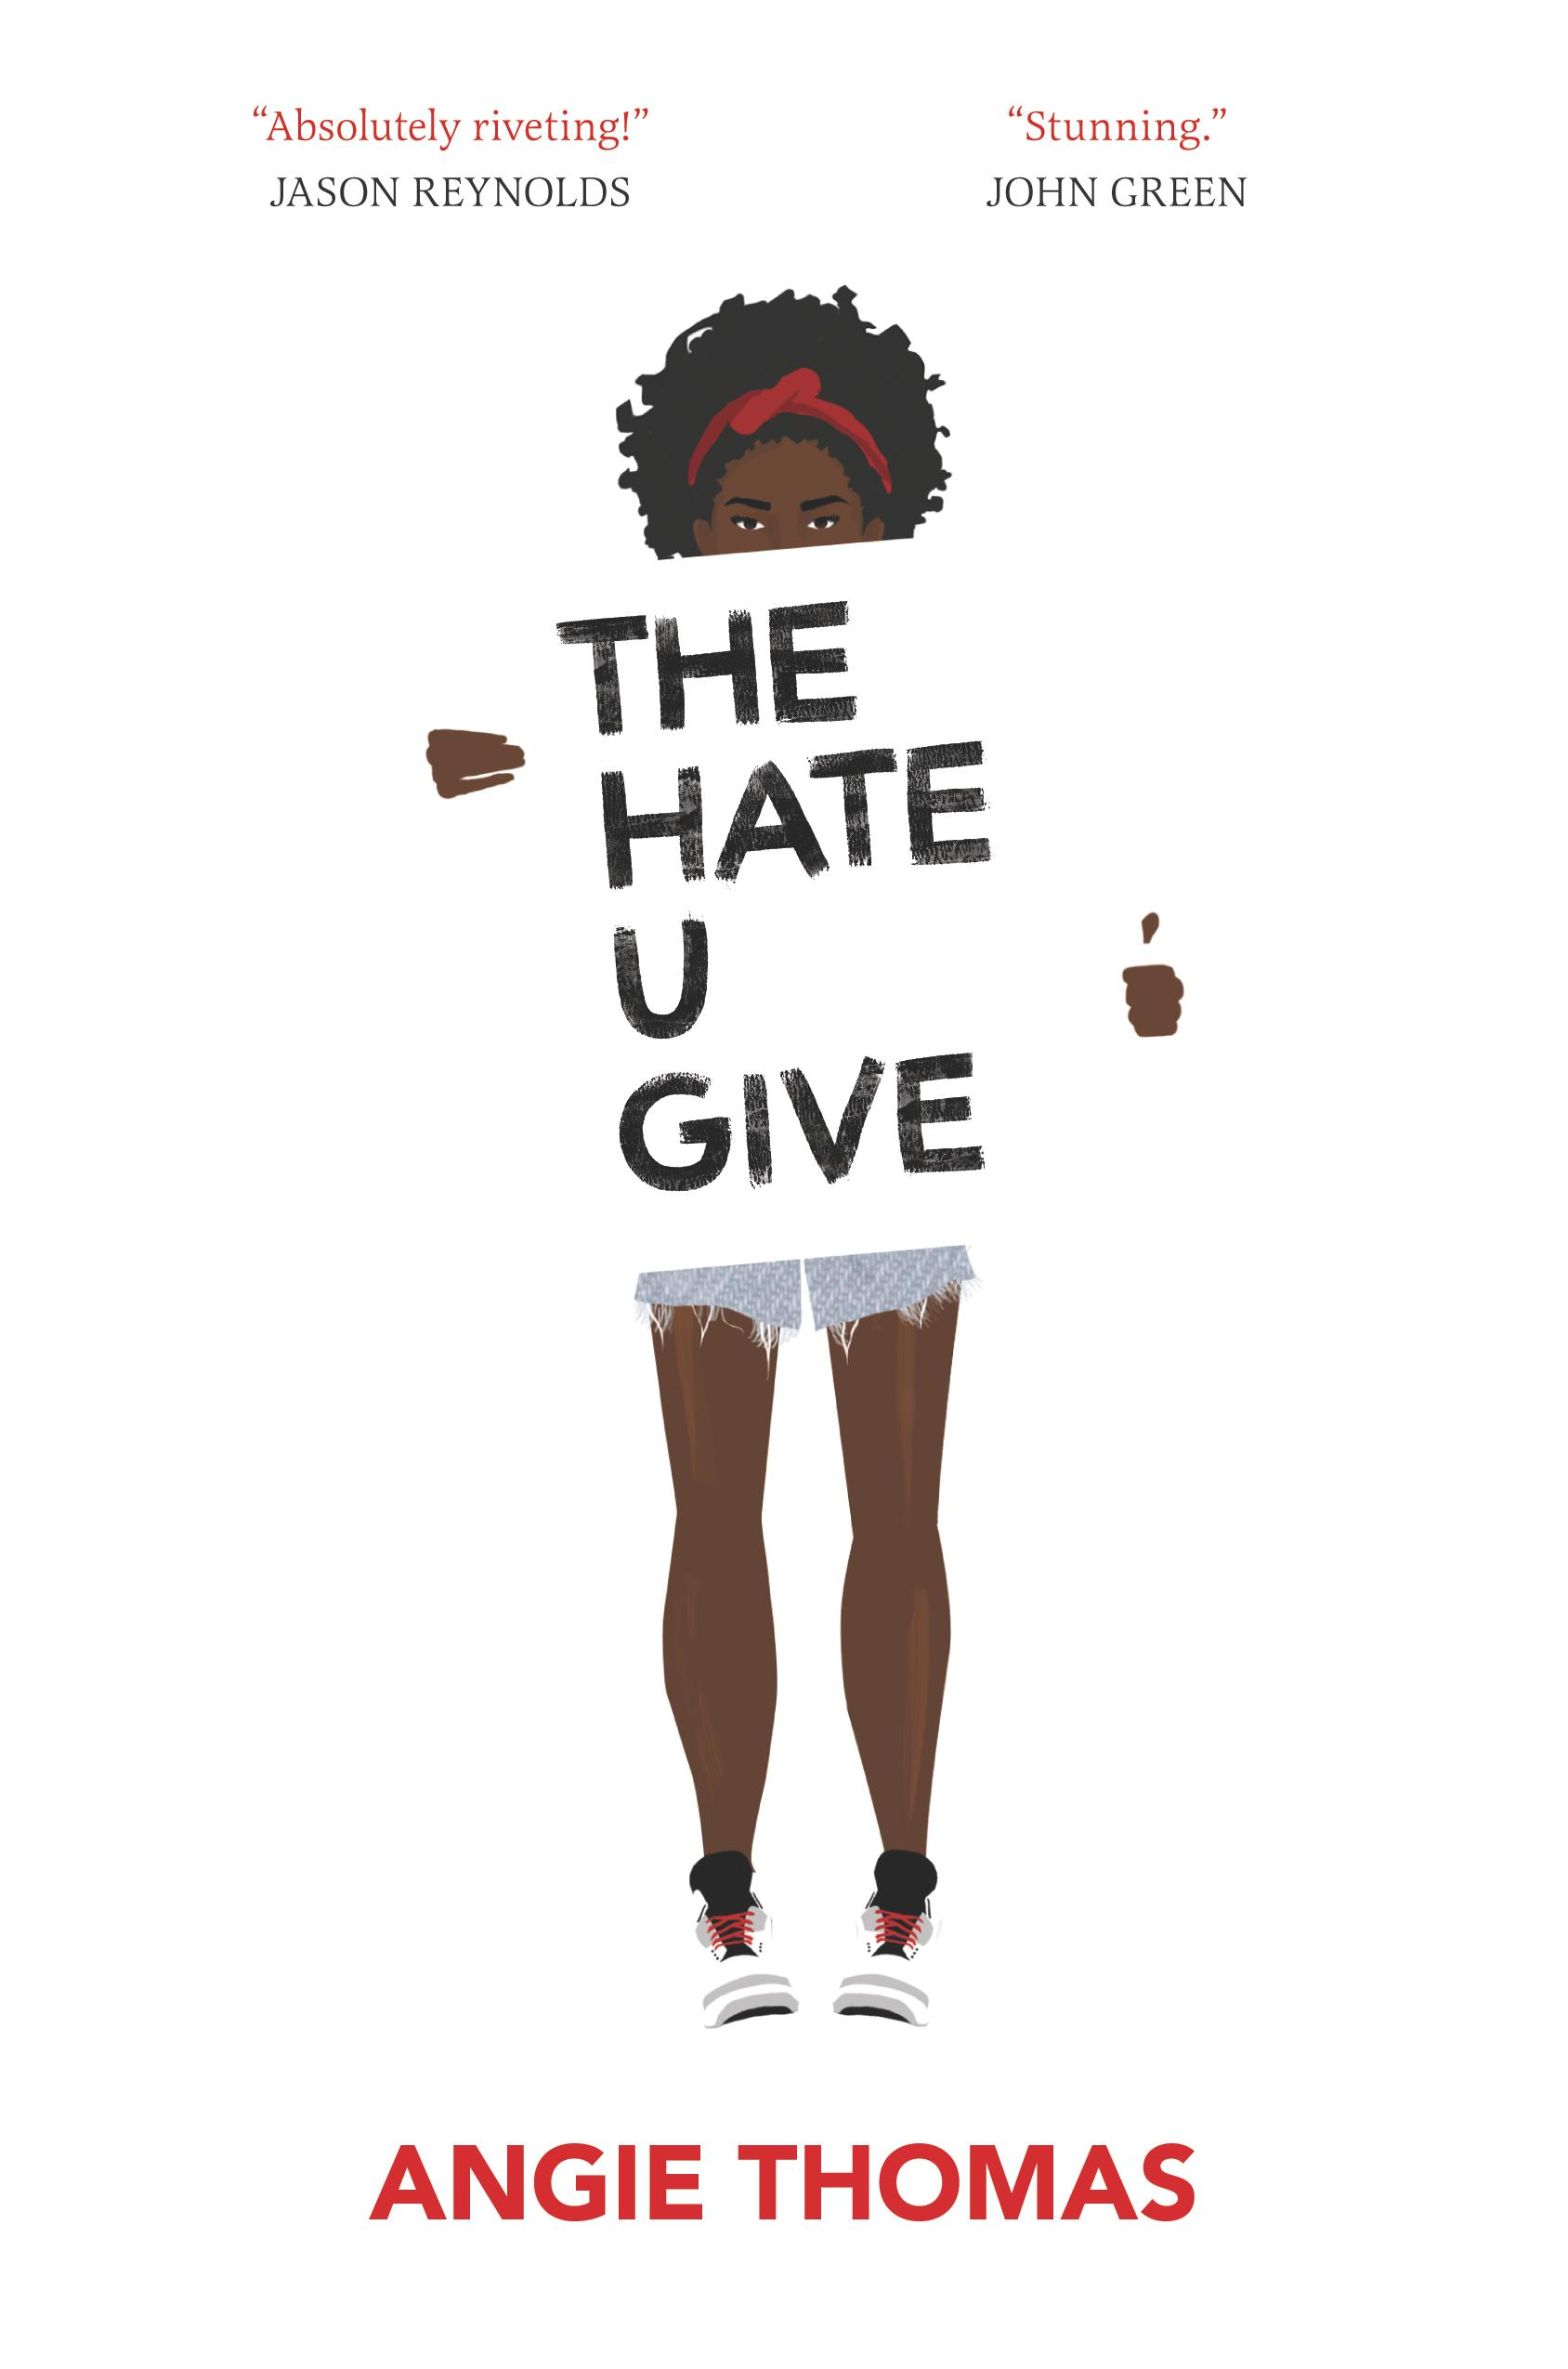 2017 National Book Awards: The Hate U Give by Angie Thomas